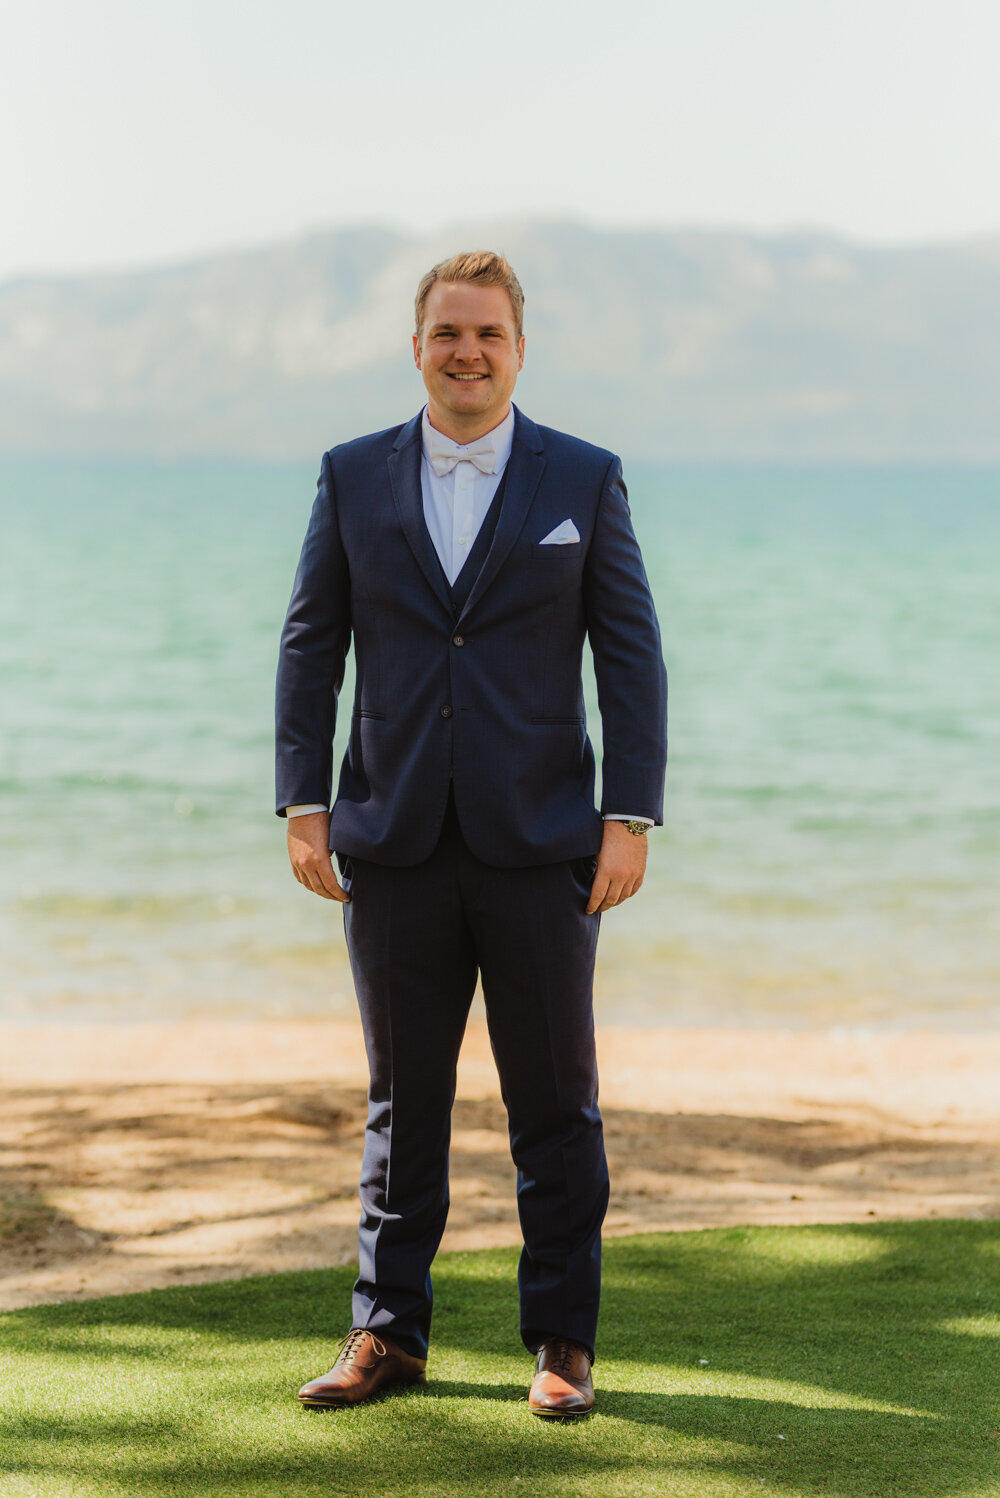 Edgewood Tahoe Wedding, photo of groom before his first look